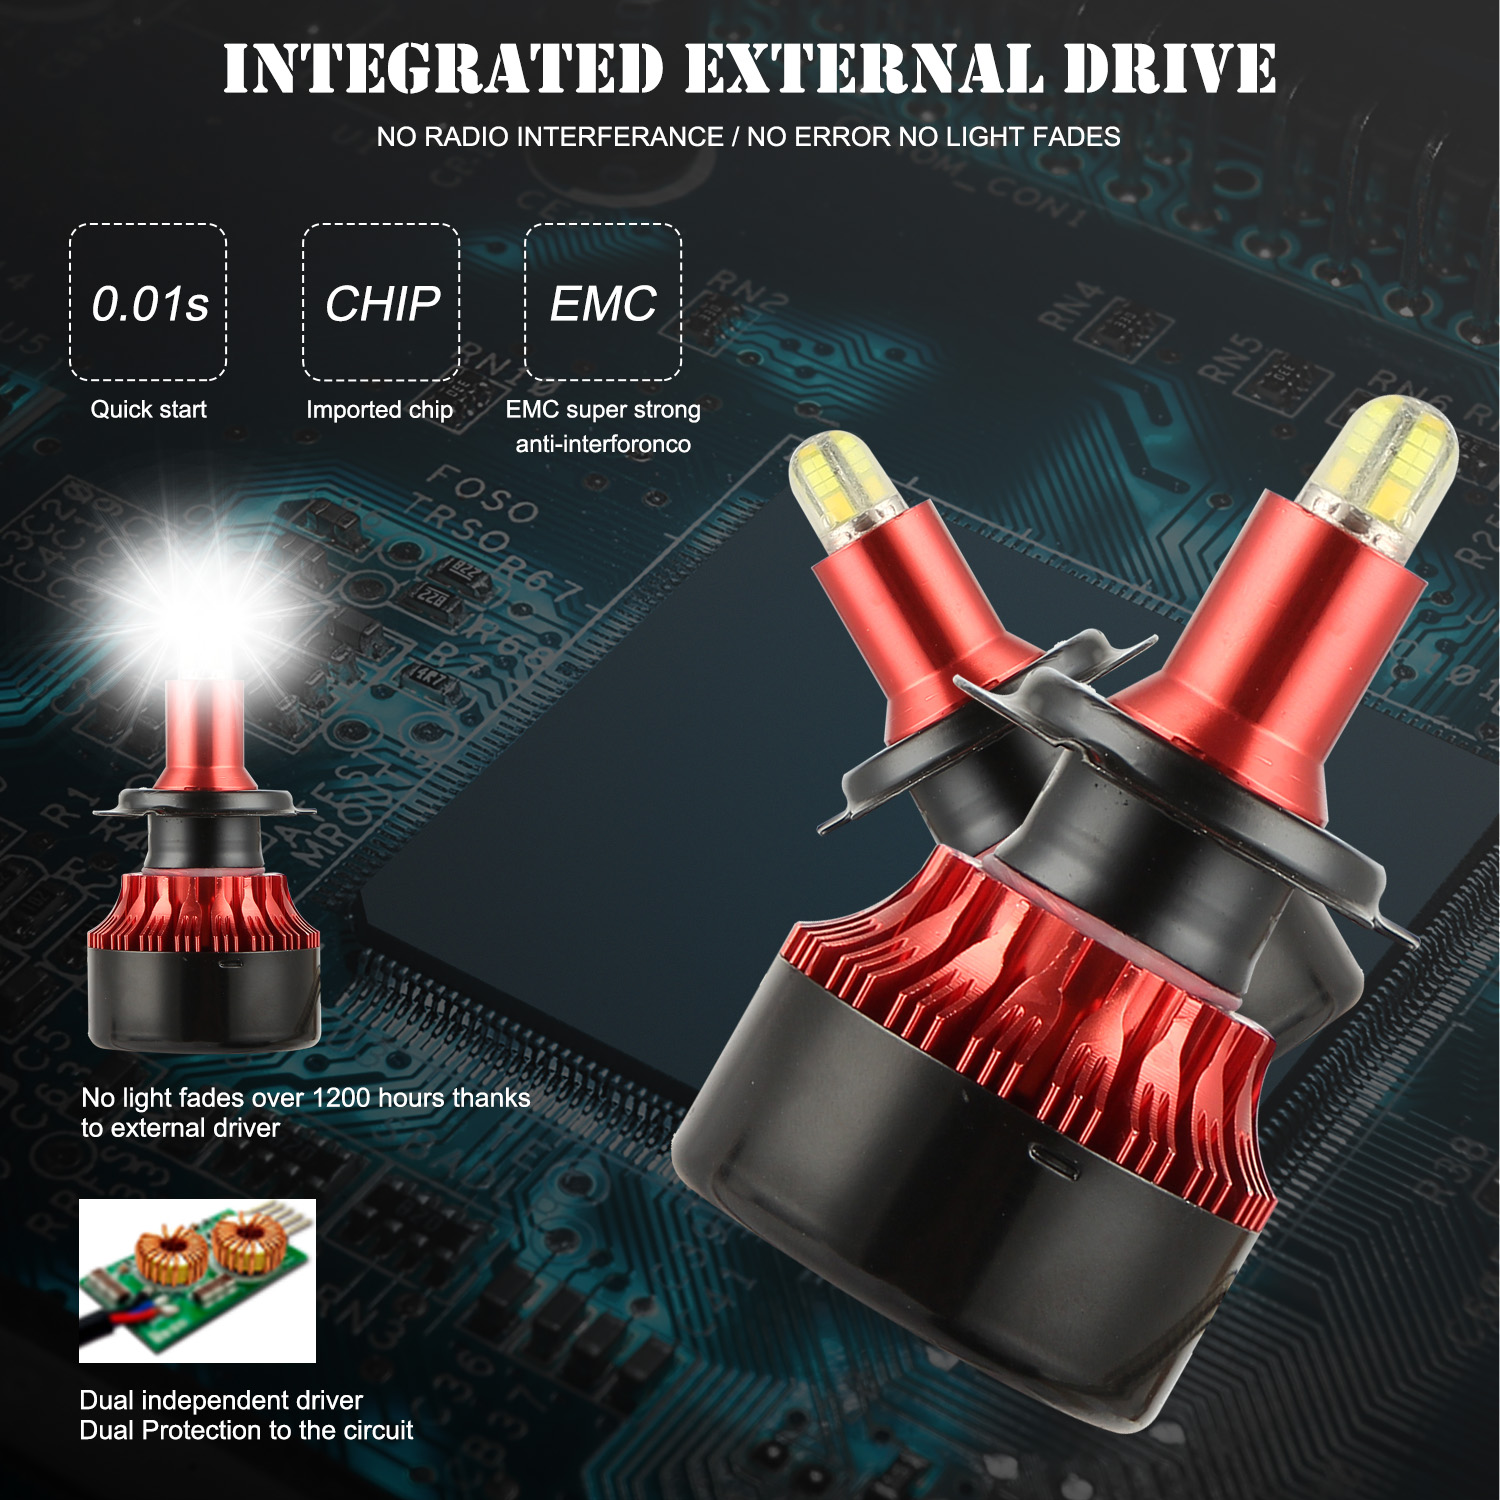 8-sides 3D H1 <font><b>H7</b></font> <font><b>LED</b></font> <font><b>Headlight</b></font> Conversion Kit Bulbs High Power 6500K <font><b>H7</b></font> H8 H11 360 degree heat radiating Fast cooling 2 Pcs image